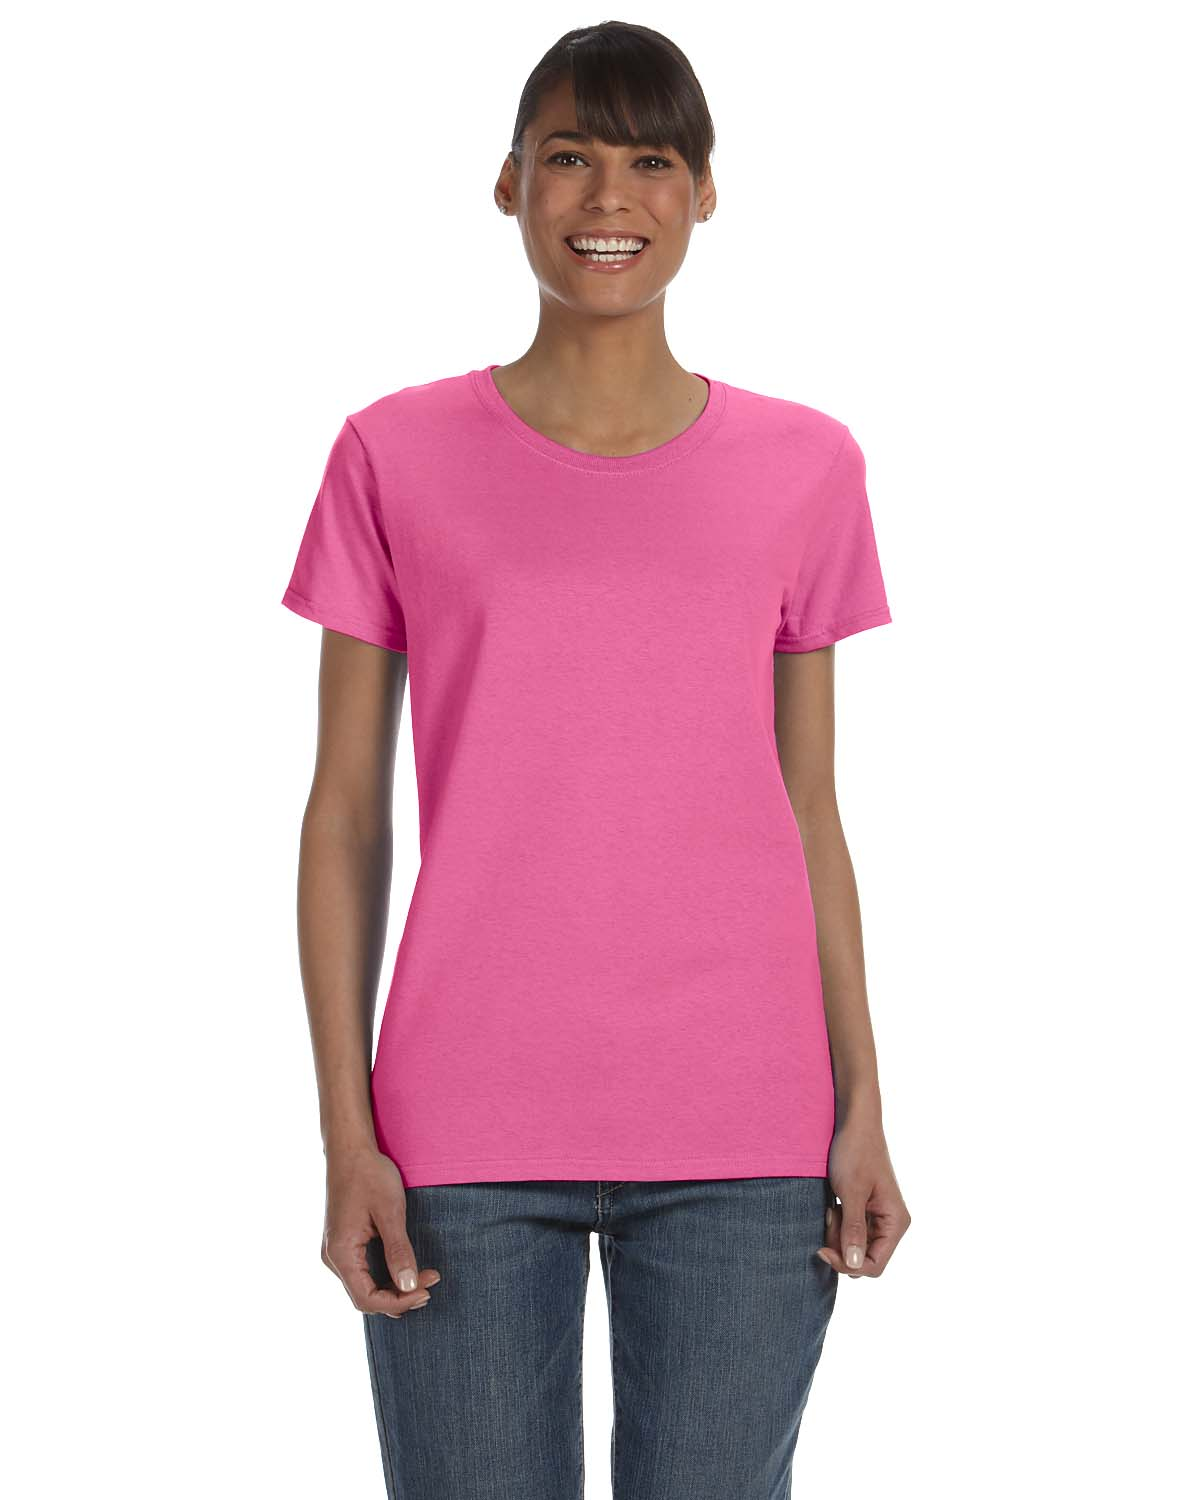 Gildan women 39 s short sleeves heavy cotton ladies 5 3 oz for Cotton shirts for womens online